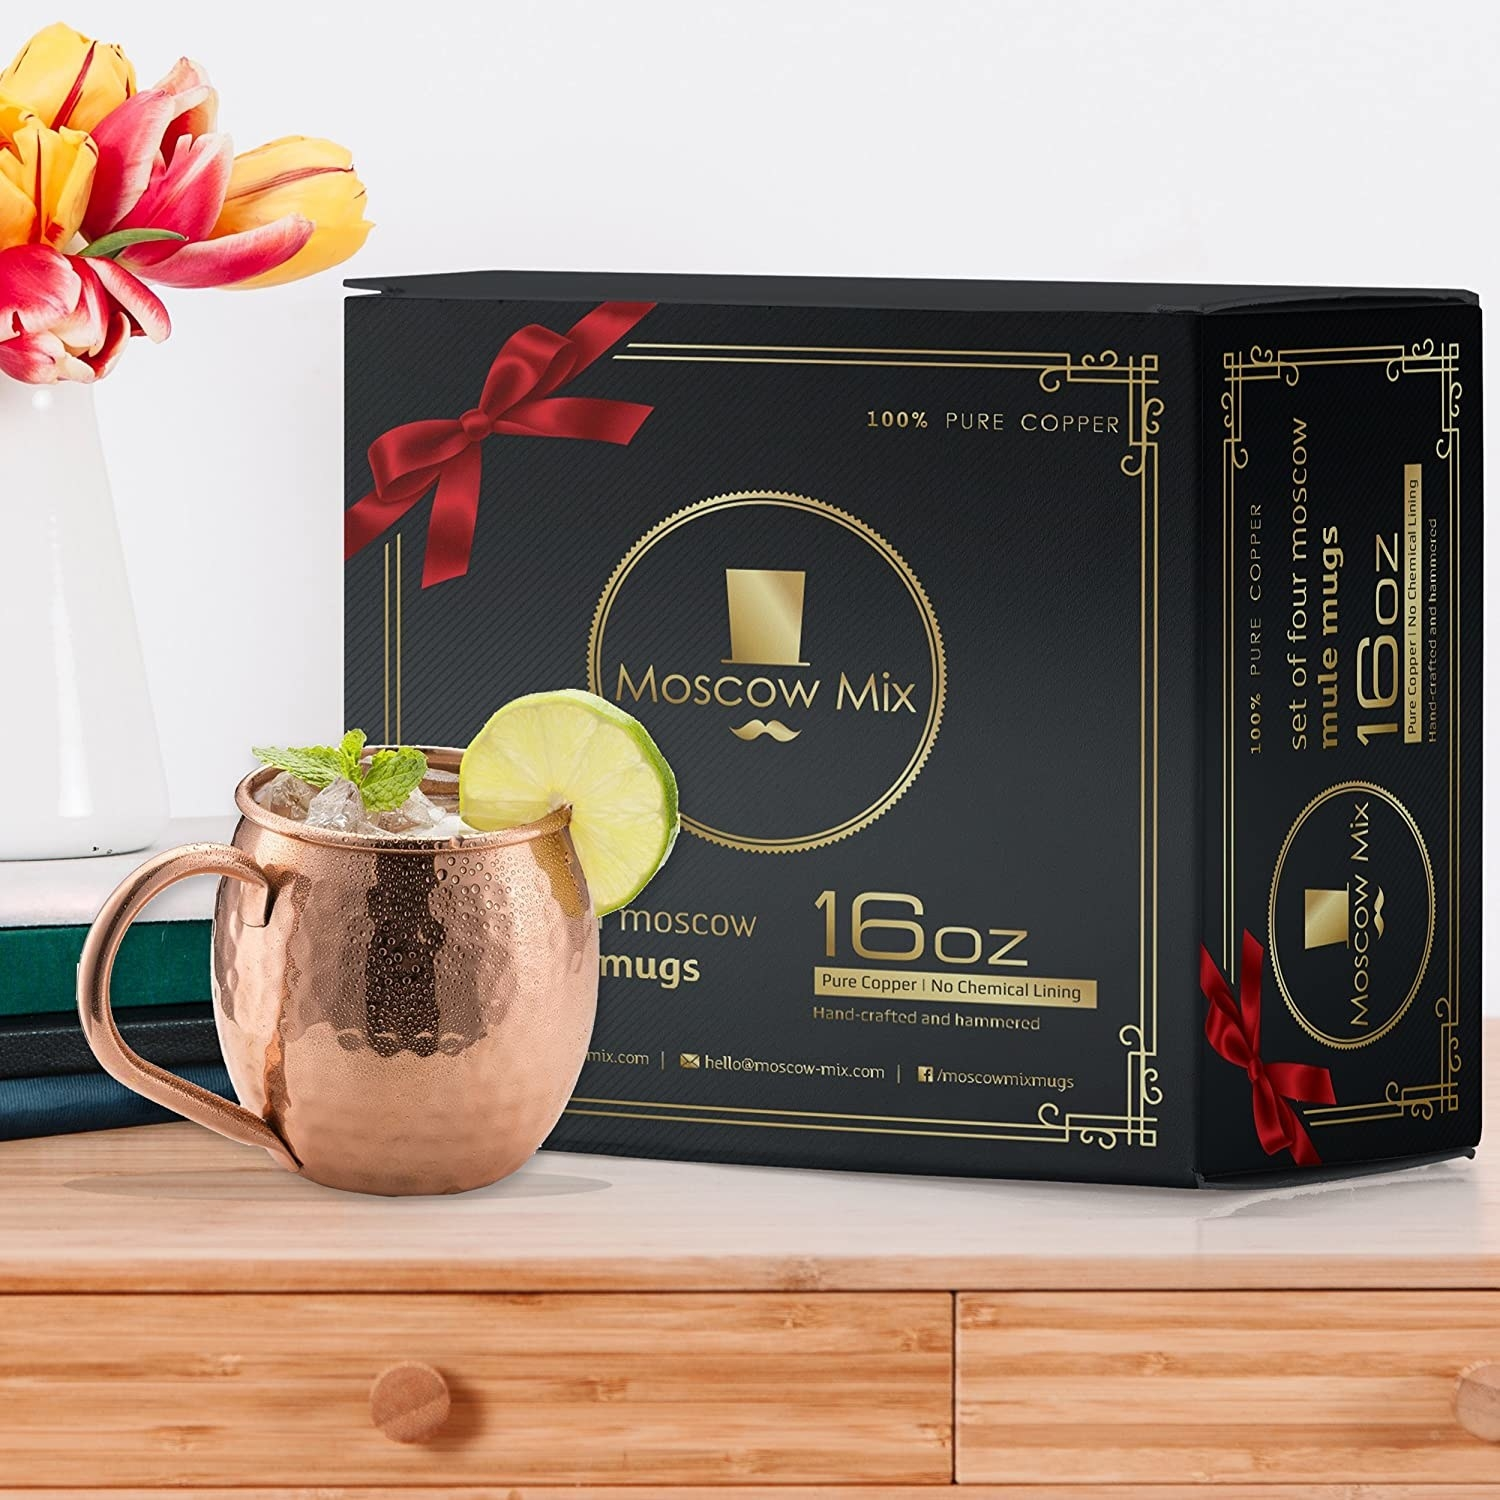 A Moscow mule cup on a table with the box that it comes in